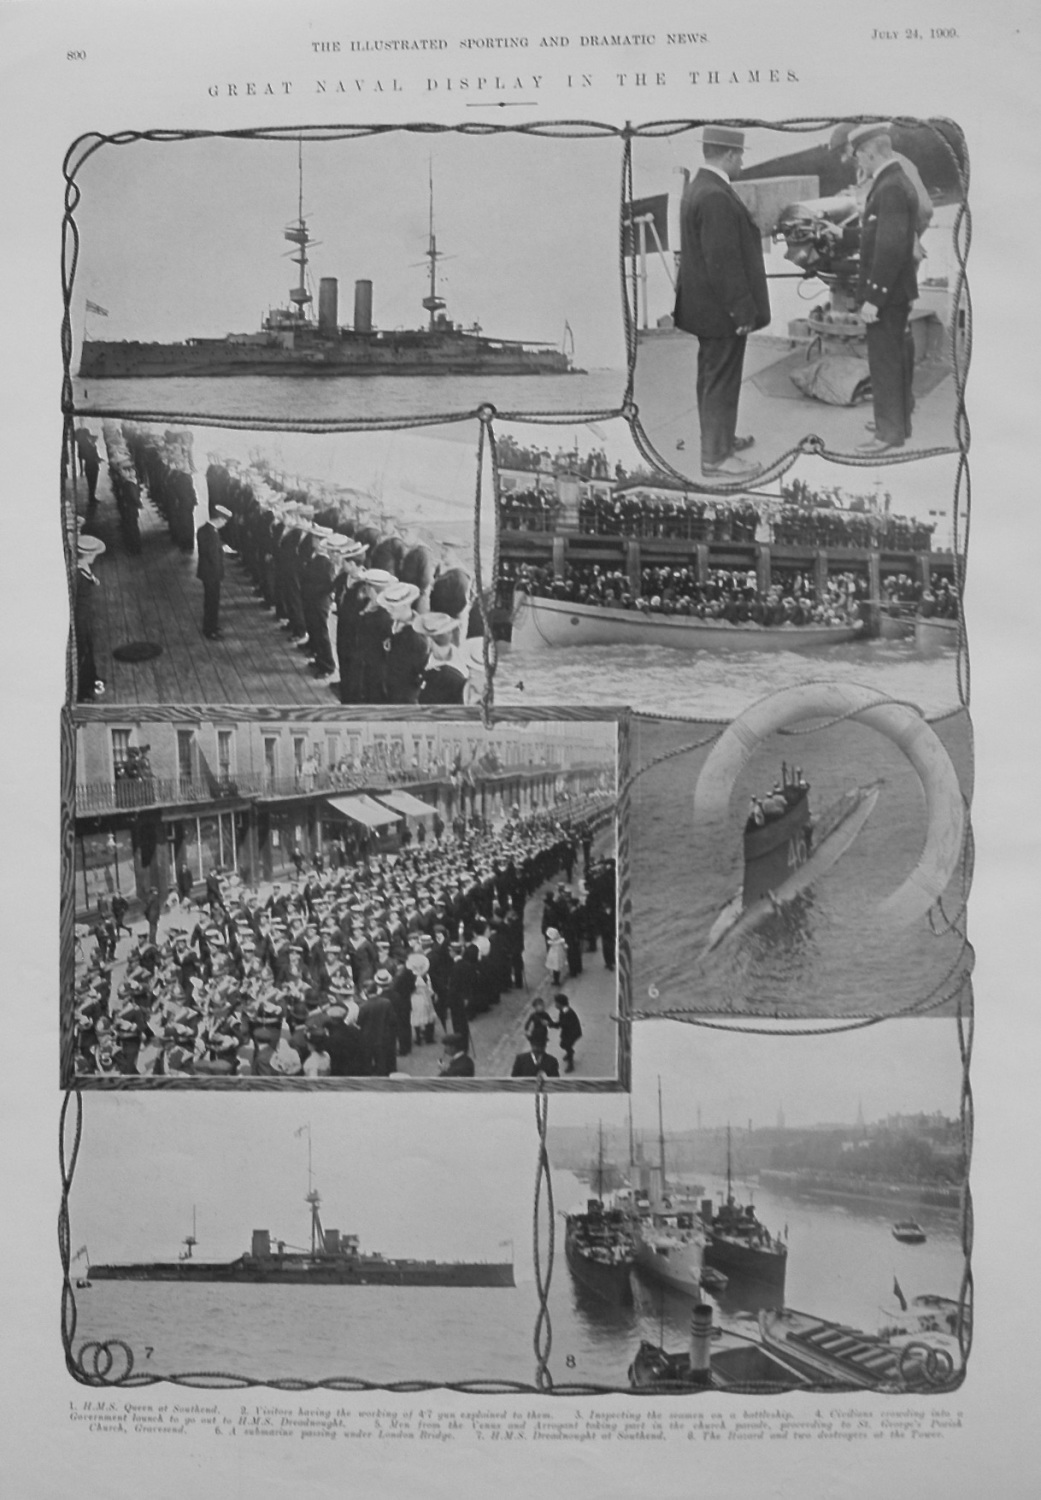 Great Naval Display in the Thames. 1909